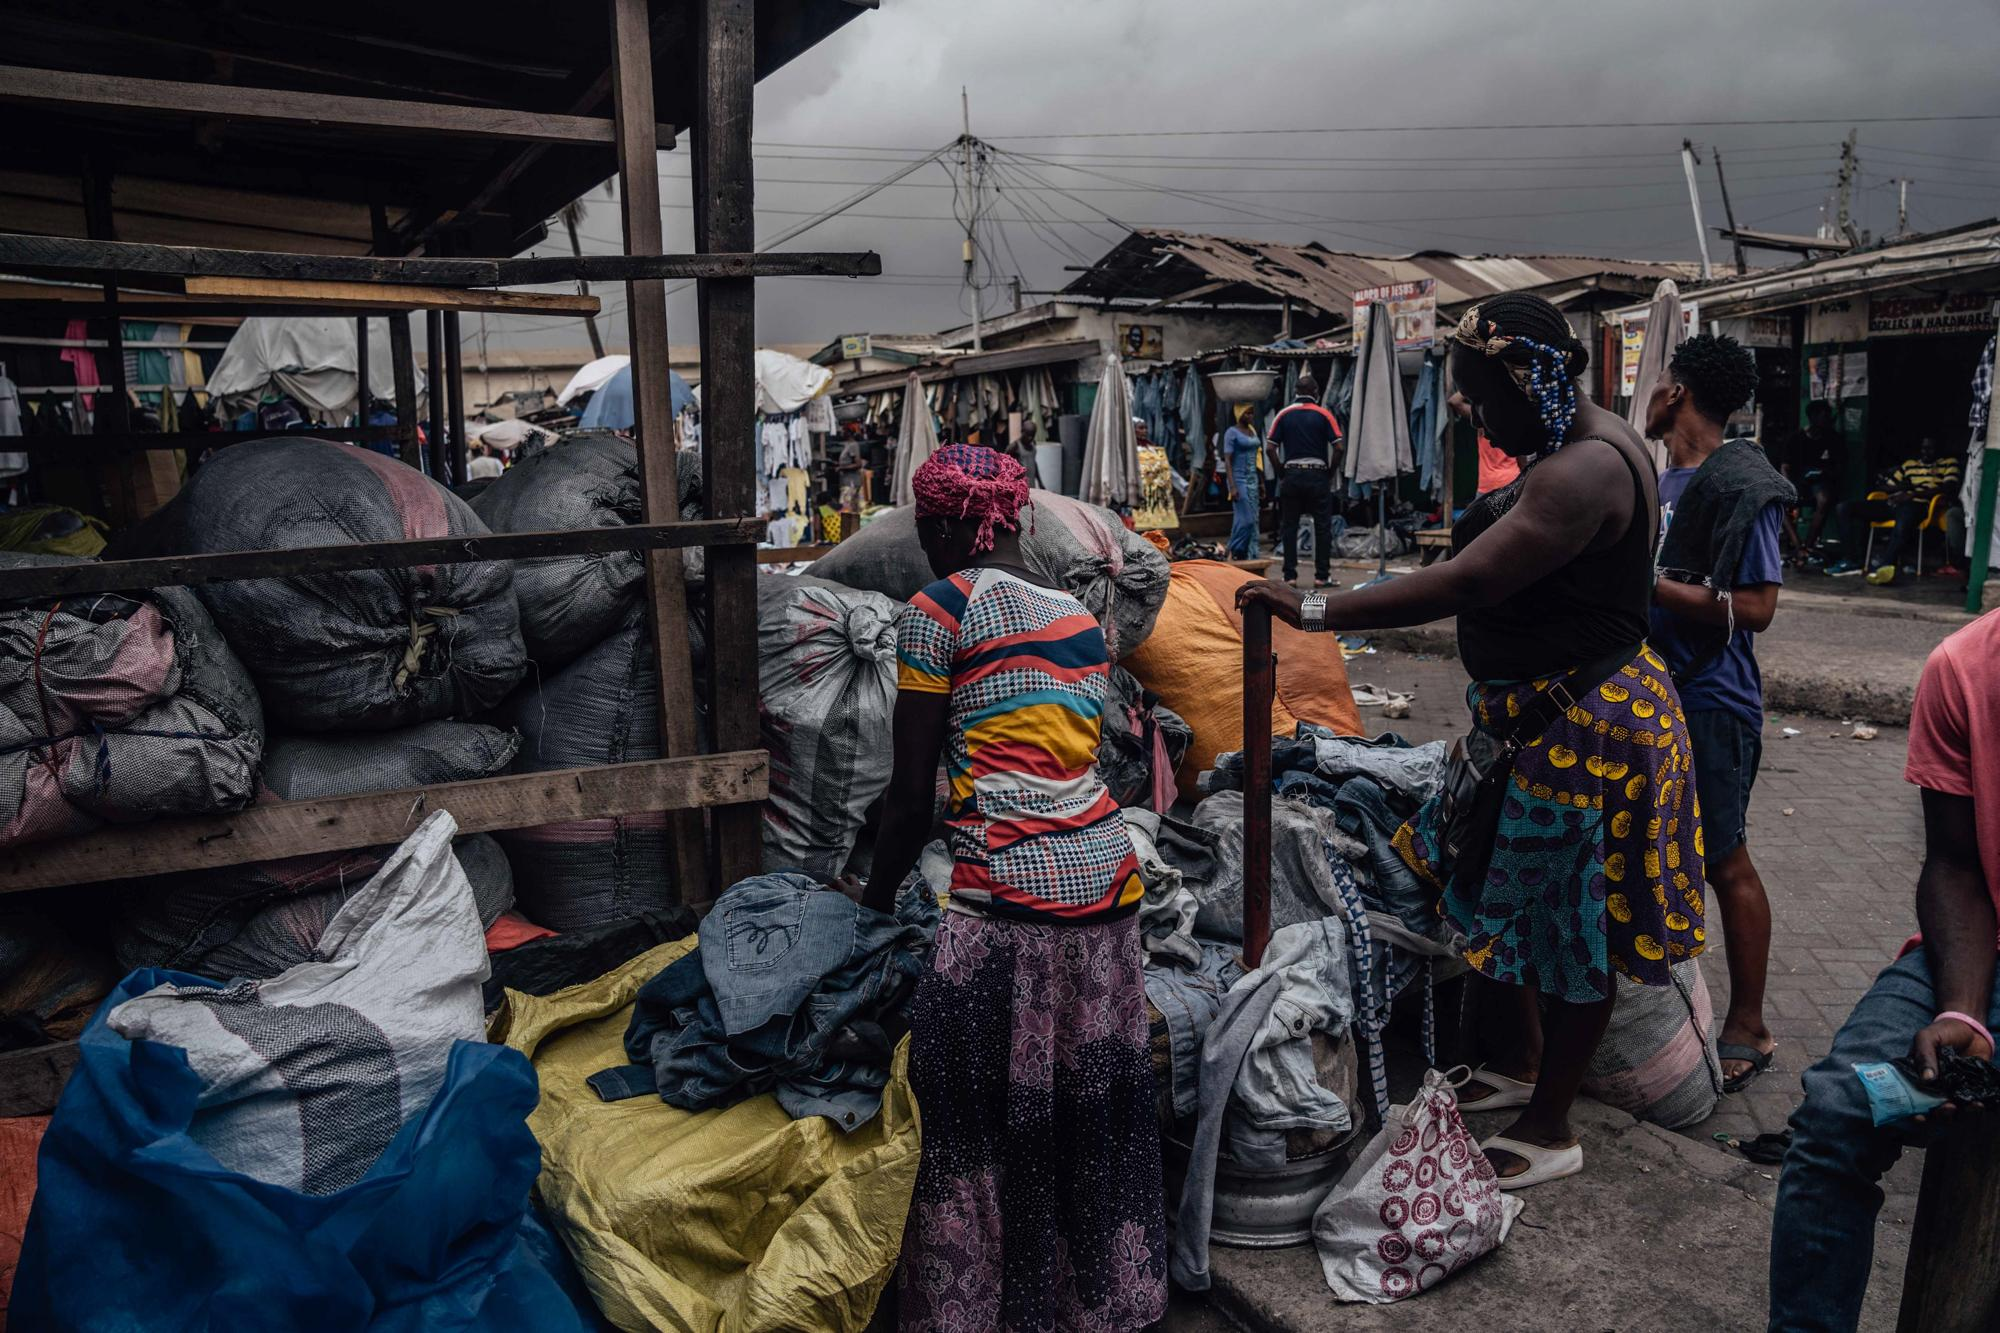 Rahina works as a kayayo (female head porter) at the biggest second hand market Kantamanto in Accra. It is estimated there are more than 160,000 of kayayei in Accra.